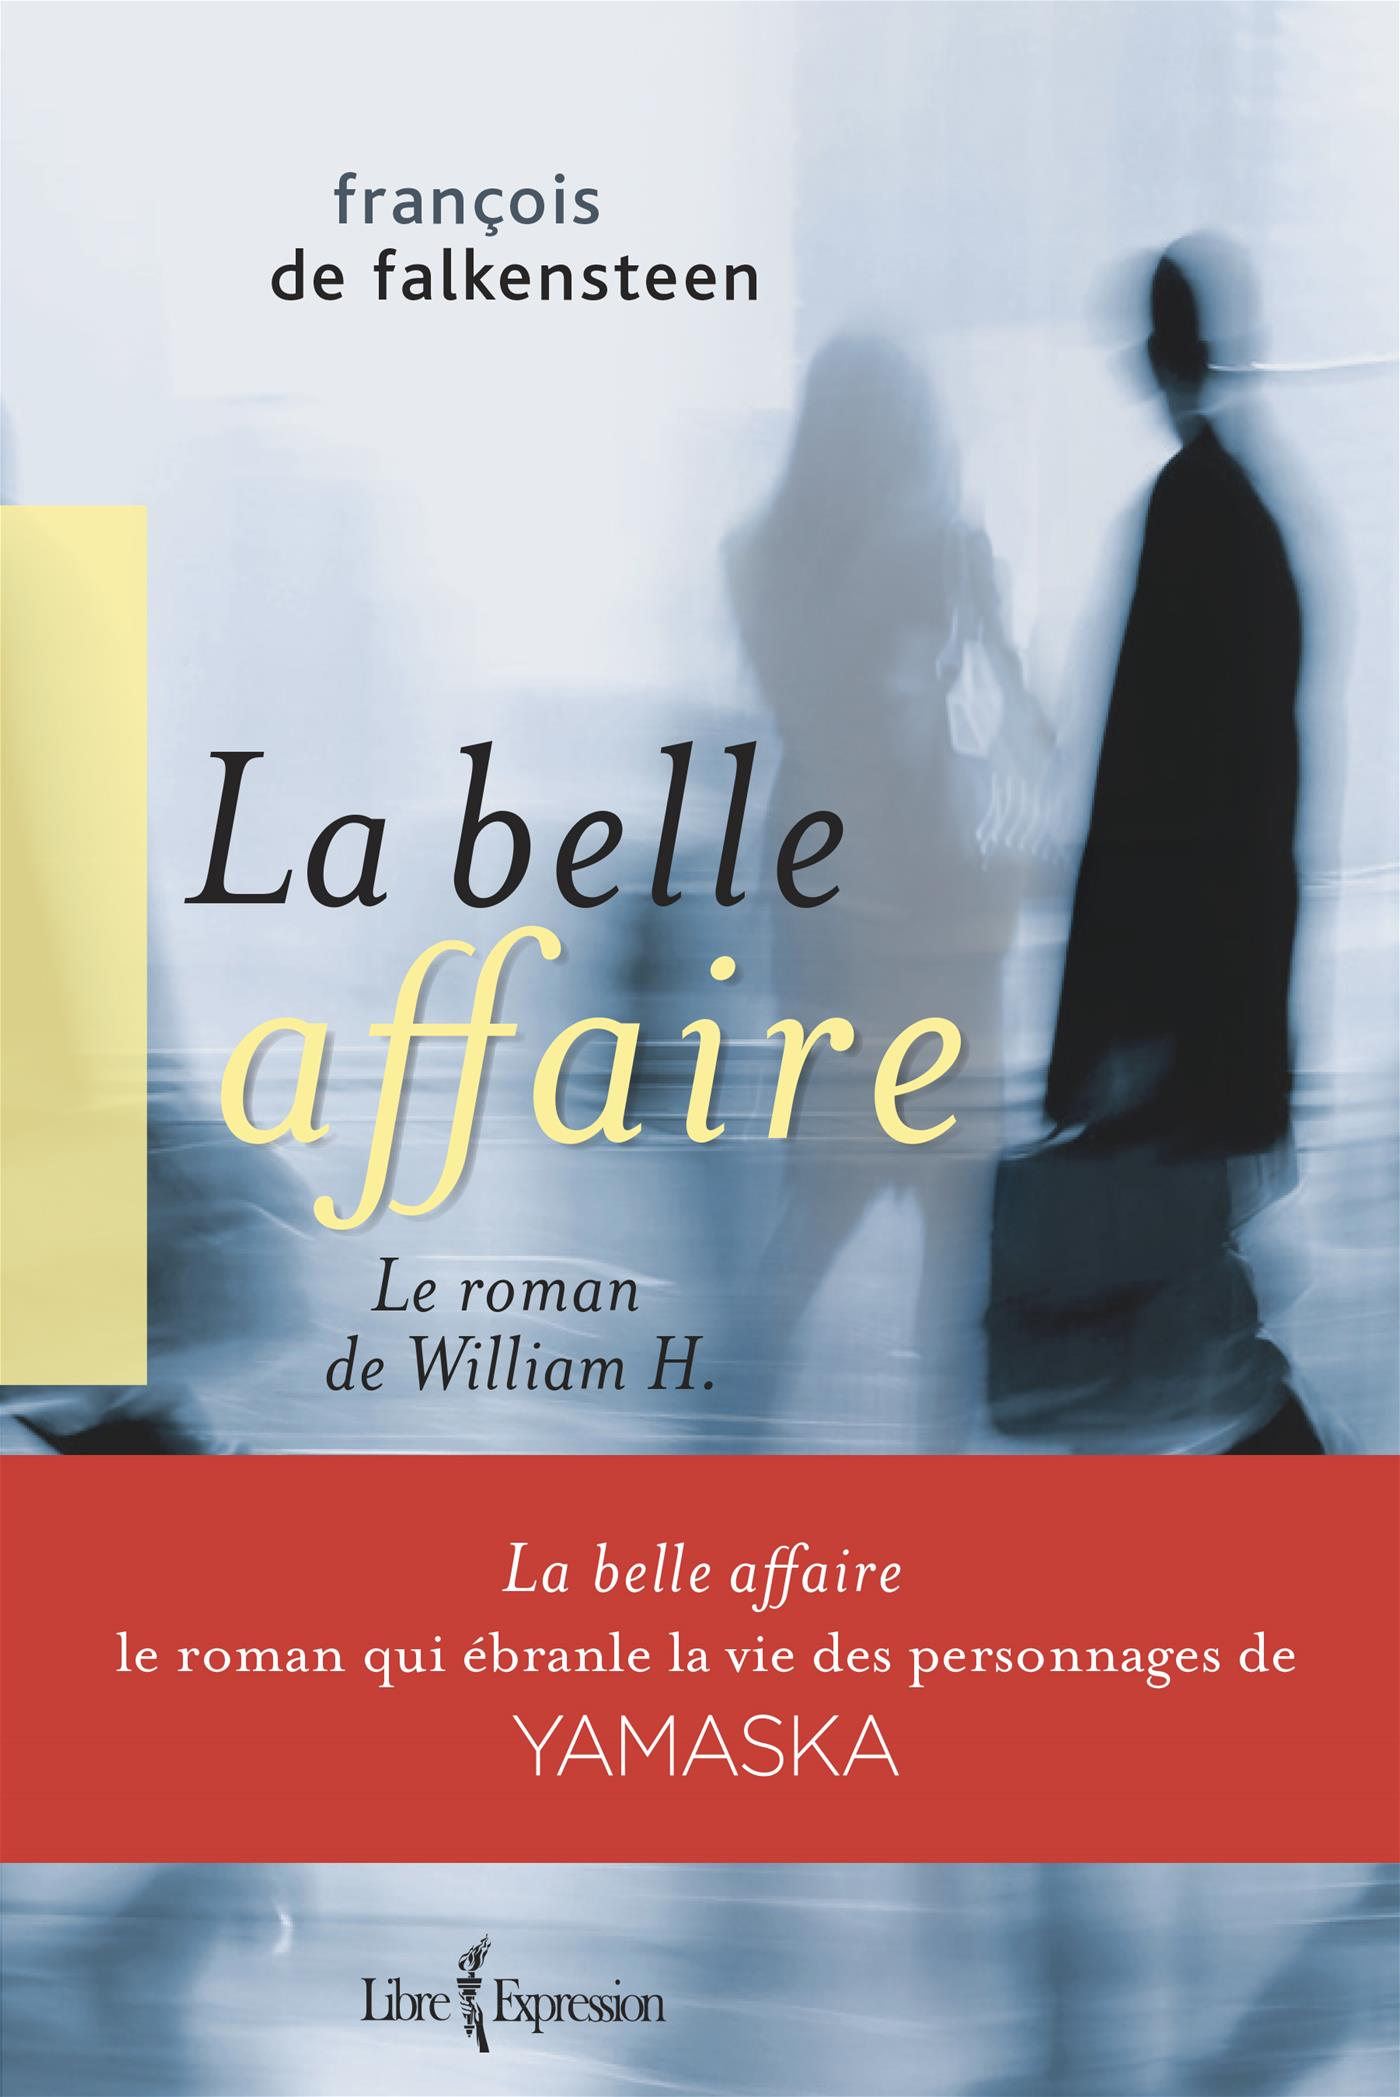 Belle affaire (La): Le roman de William H. - François De Falkensteen